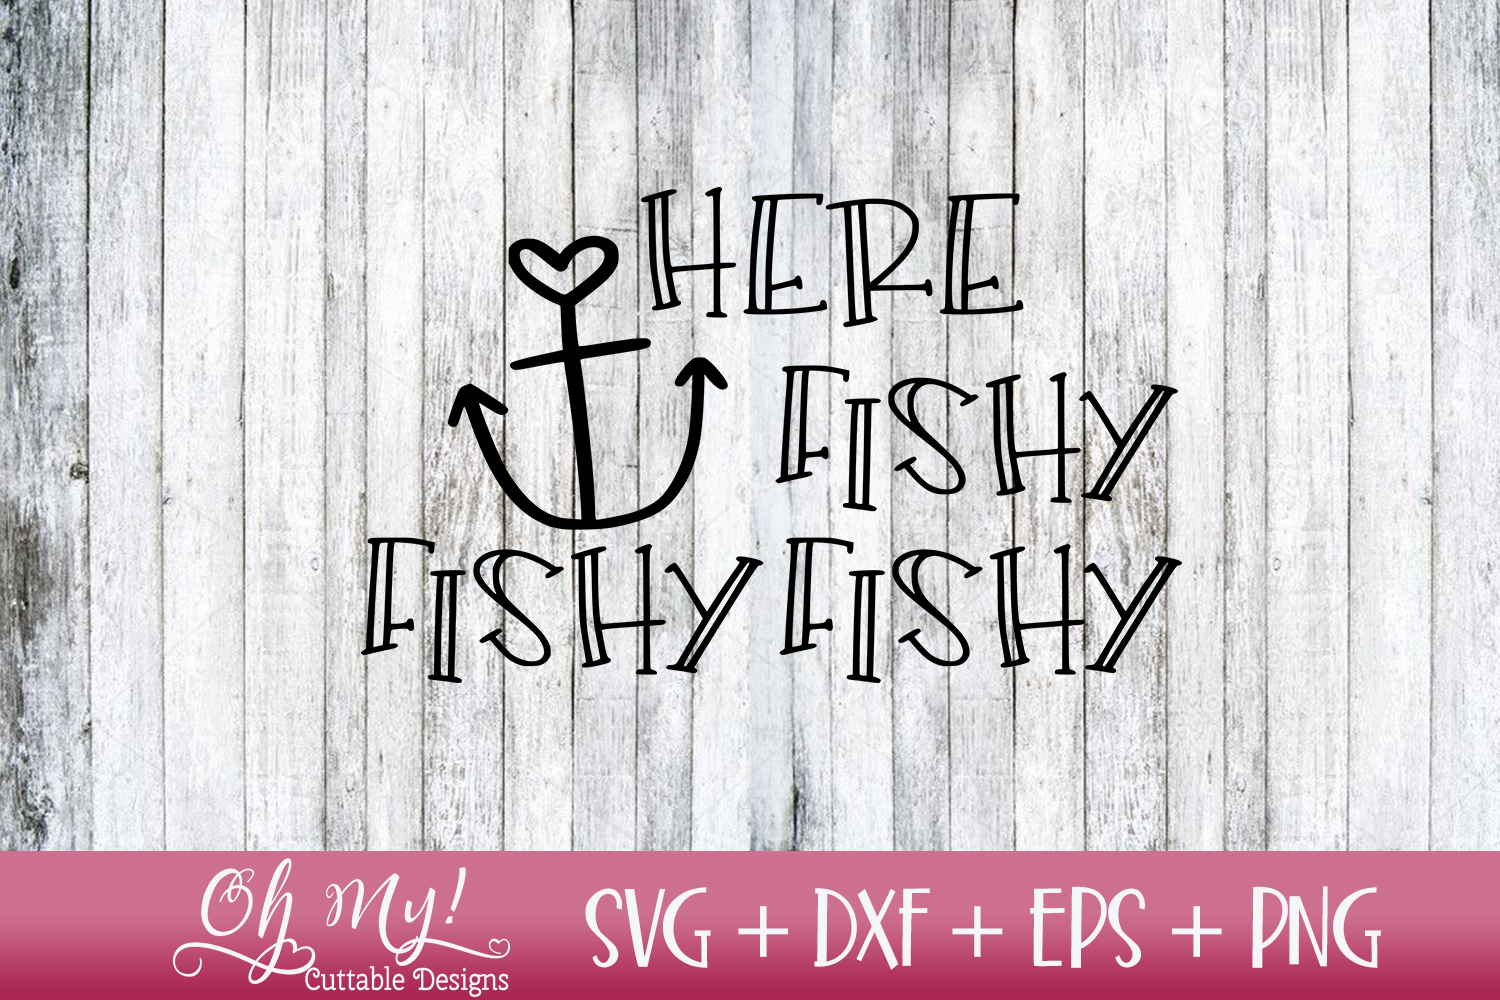 Here Fishy Fishy Fishy - SVG DXF EPS PNG Cutting File example image 1